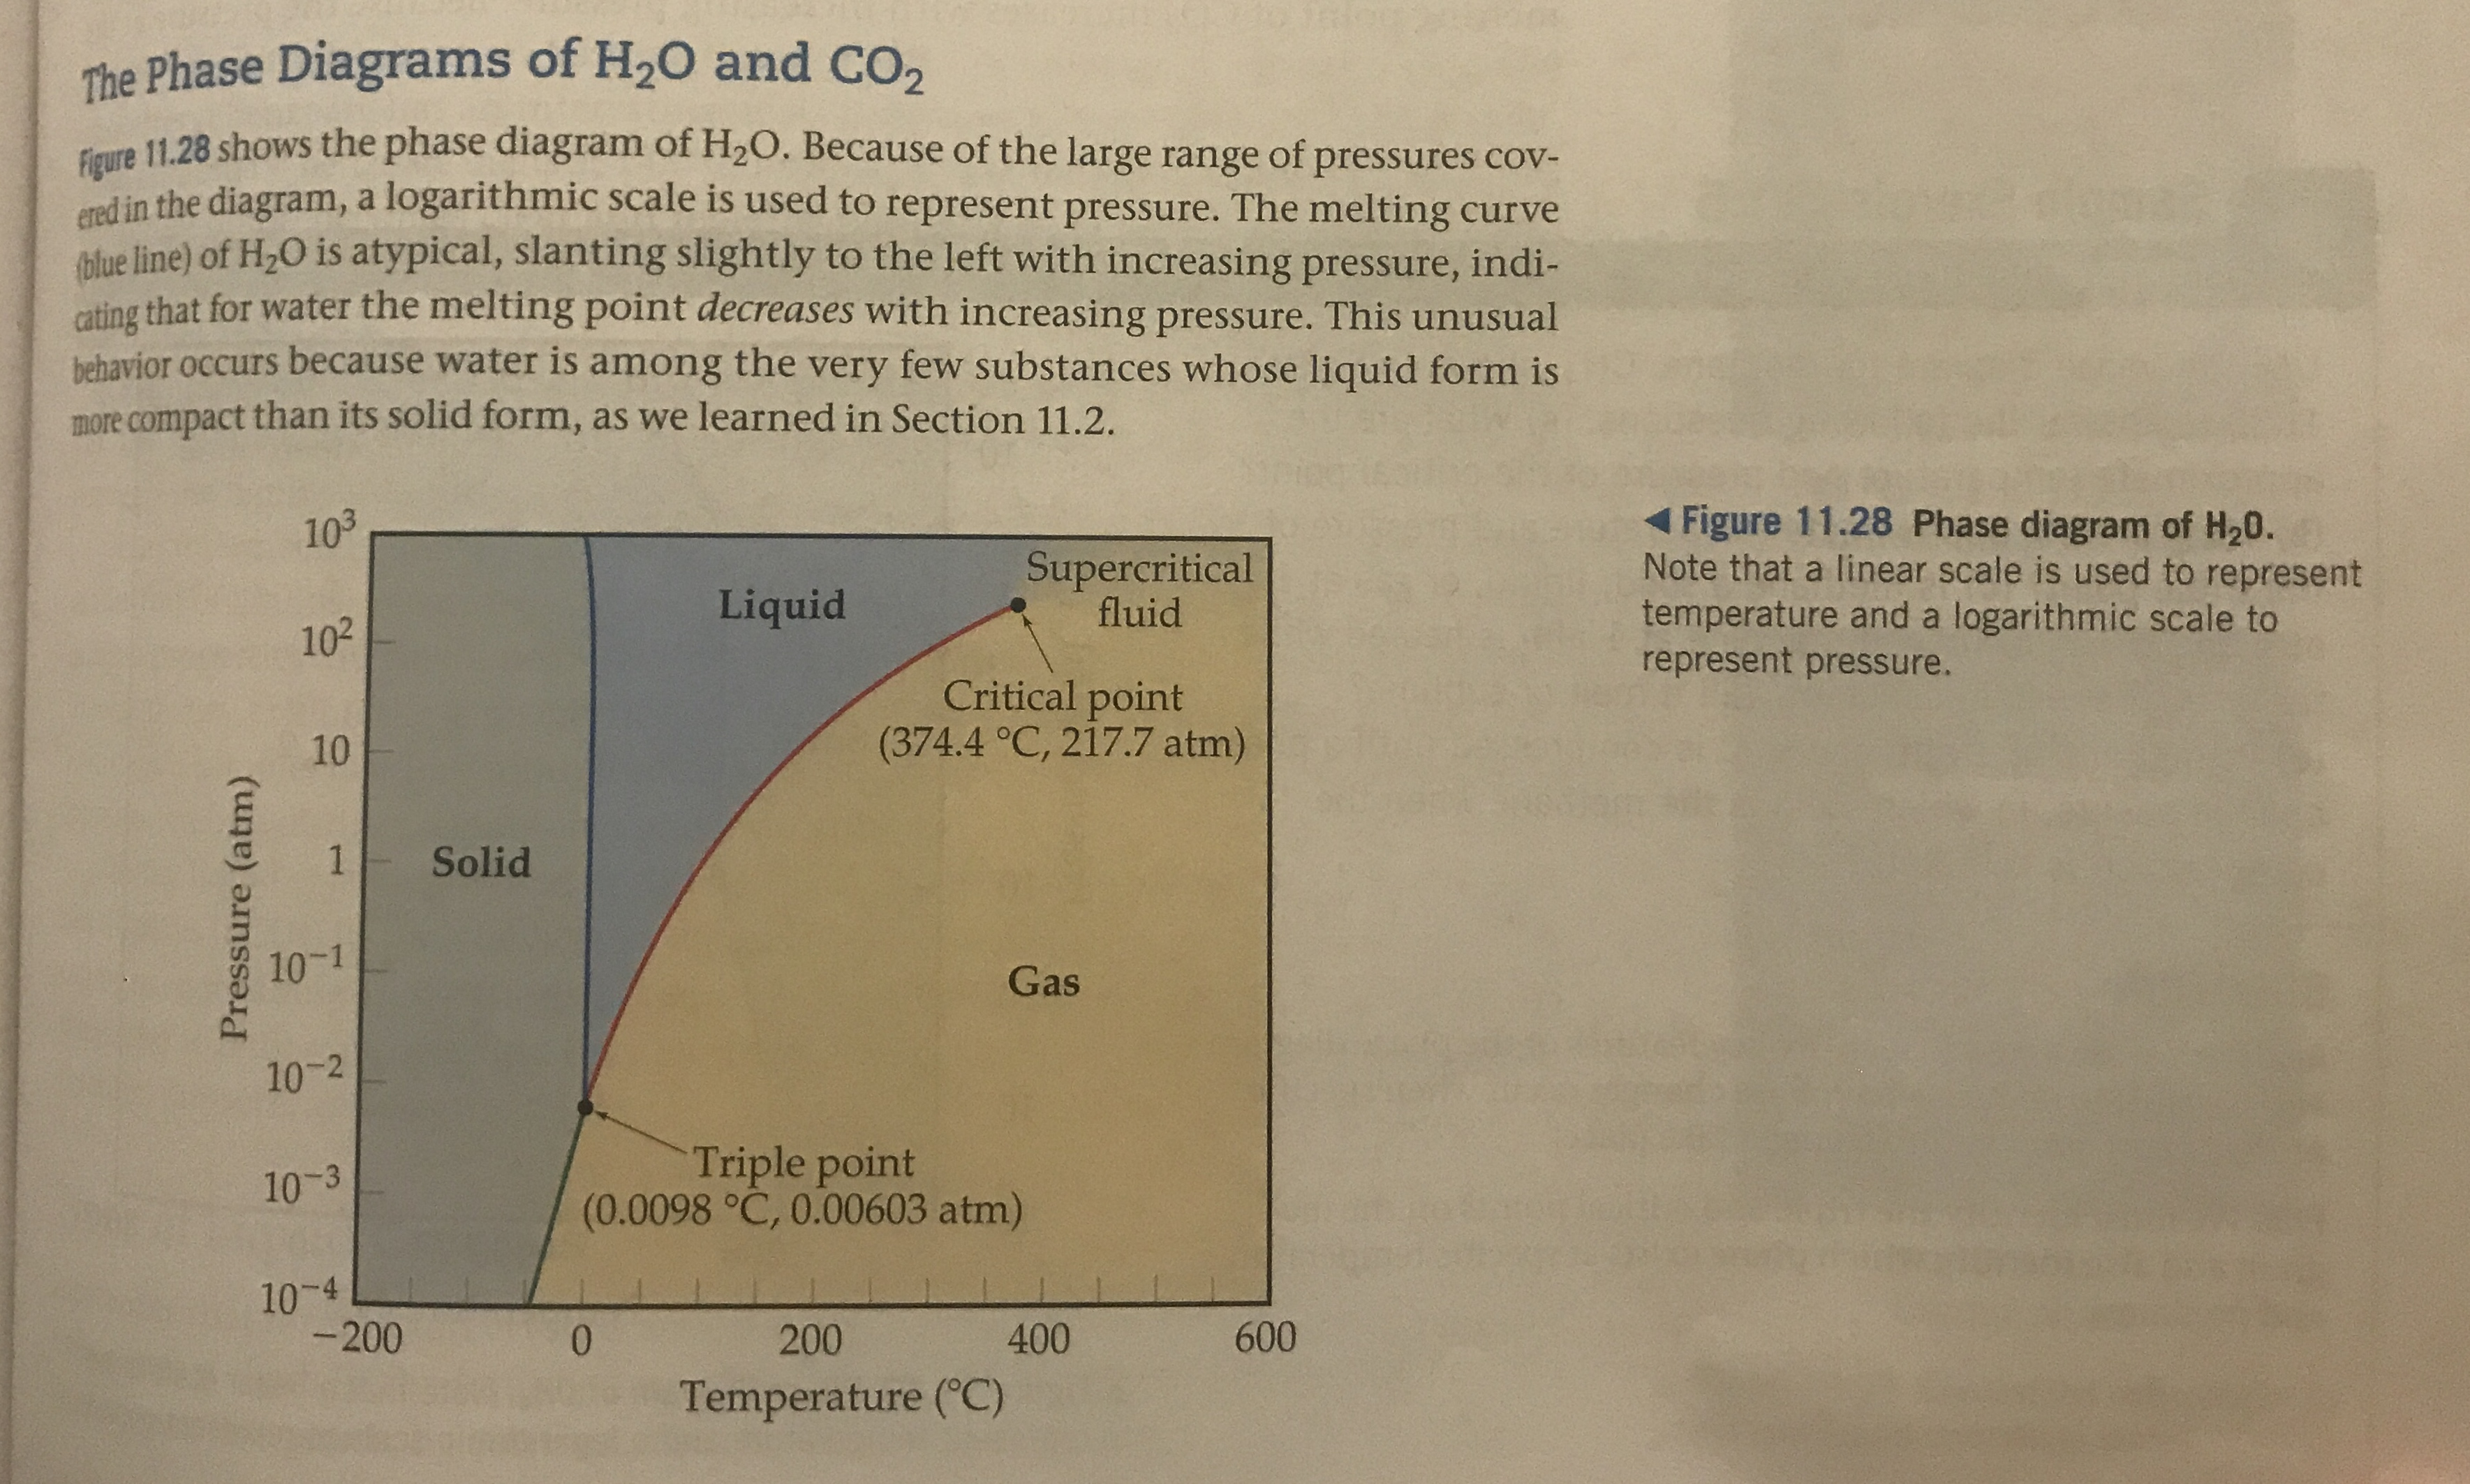 The Phase Diagrams of H20 and CO2 Figure 11.28 shows the phase diagram of H2O. Because of the large range of pressures cov- red in the diagram, a logarithmic scale is used to represent pressure. The melting curve lue line) of H2O is atypical, slanting slightly to the left with increasing pressure, indi- cating that for water the melting point decreases with increasing pressure. This unusual behavior occurs because water is among the very few substances whose liquid form is more compact than its solid form, as we learned in Section 11.2. Figure 11.28 Phase diagram of H20. Note that a linear scale is used to represent temperature and a logarithmic scale to represent pressure. 103 Supercritical fluid Liquid 102 Critical point (374.4 °C, 217.7 atm) 10 1 Solid 10-1 Gas 10-2 Triple point (0.0098 °C, 0.00603 atm) 10-3 10-4 -200 600 400 200 0 Temperature (C) Pressure (atm)